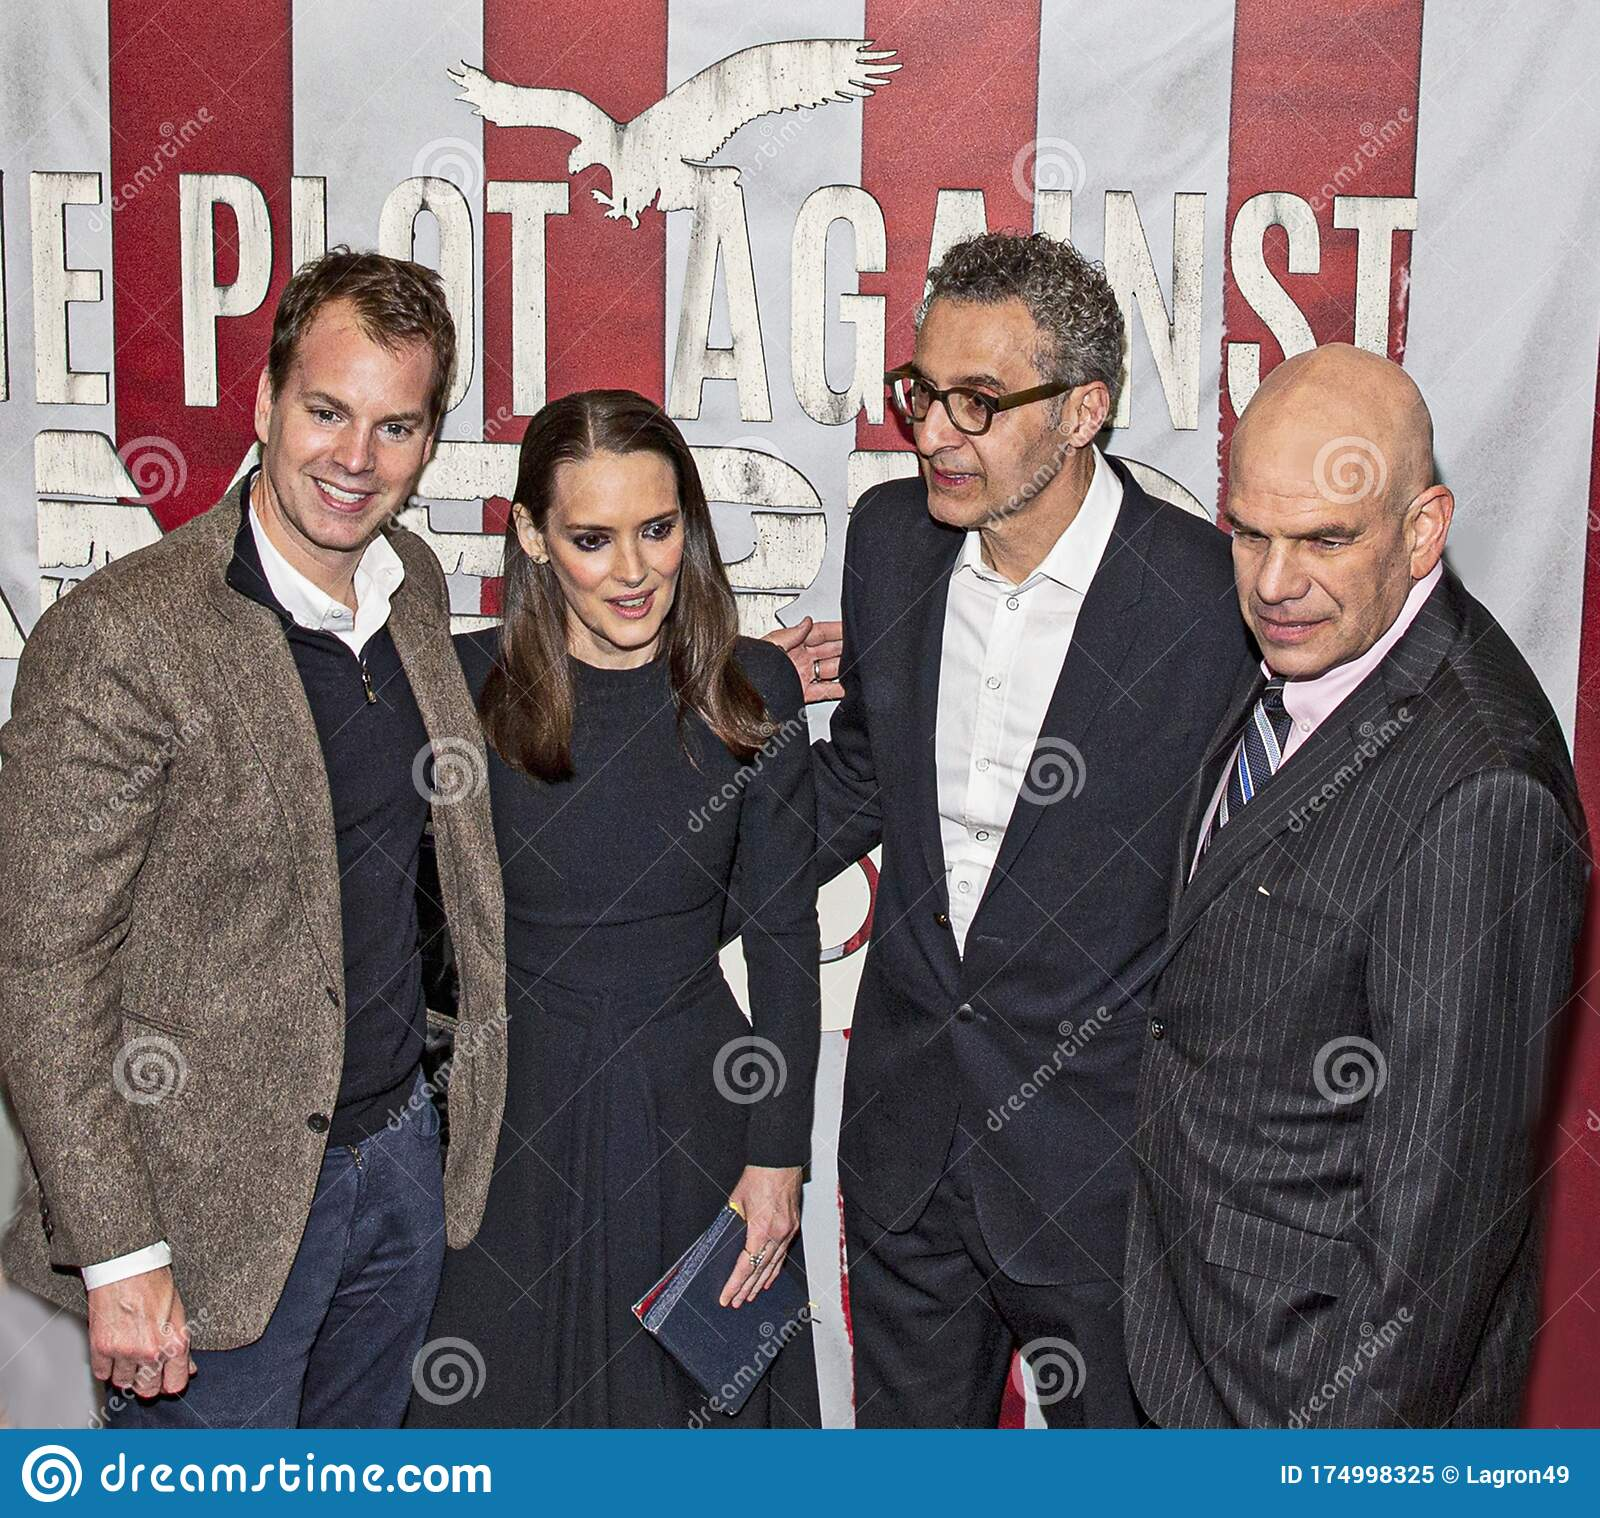 Winona Ryder John Turturro And David Simon At Hbo Red Carpet Premiere Of The Plot Against America Editorial Image Image Of Attitude Event 174998325